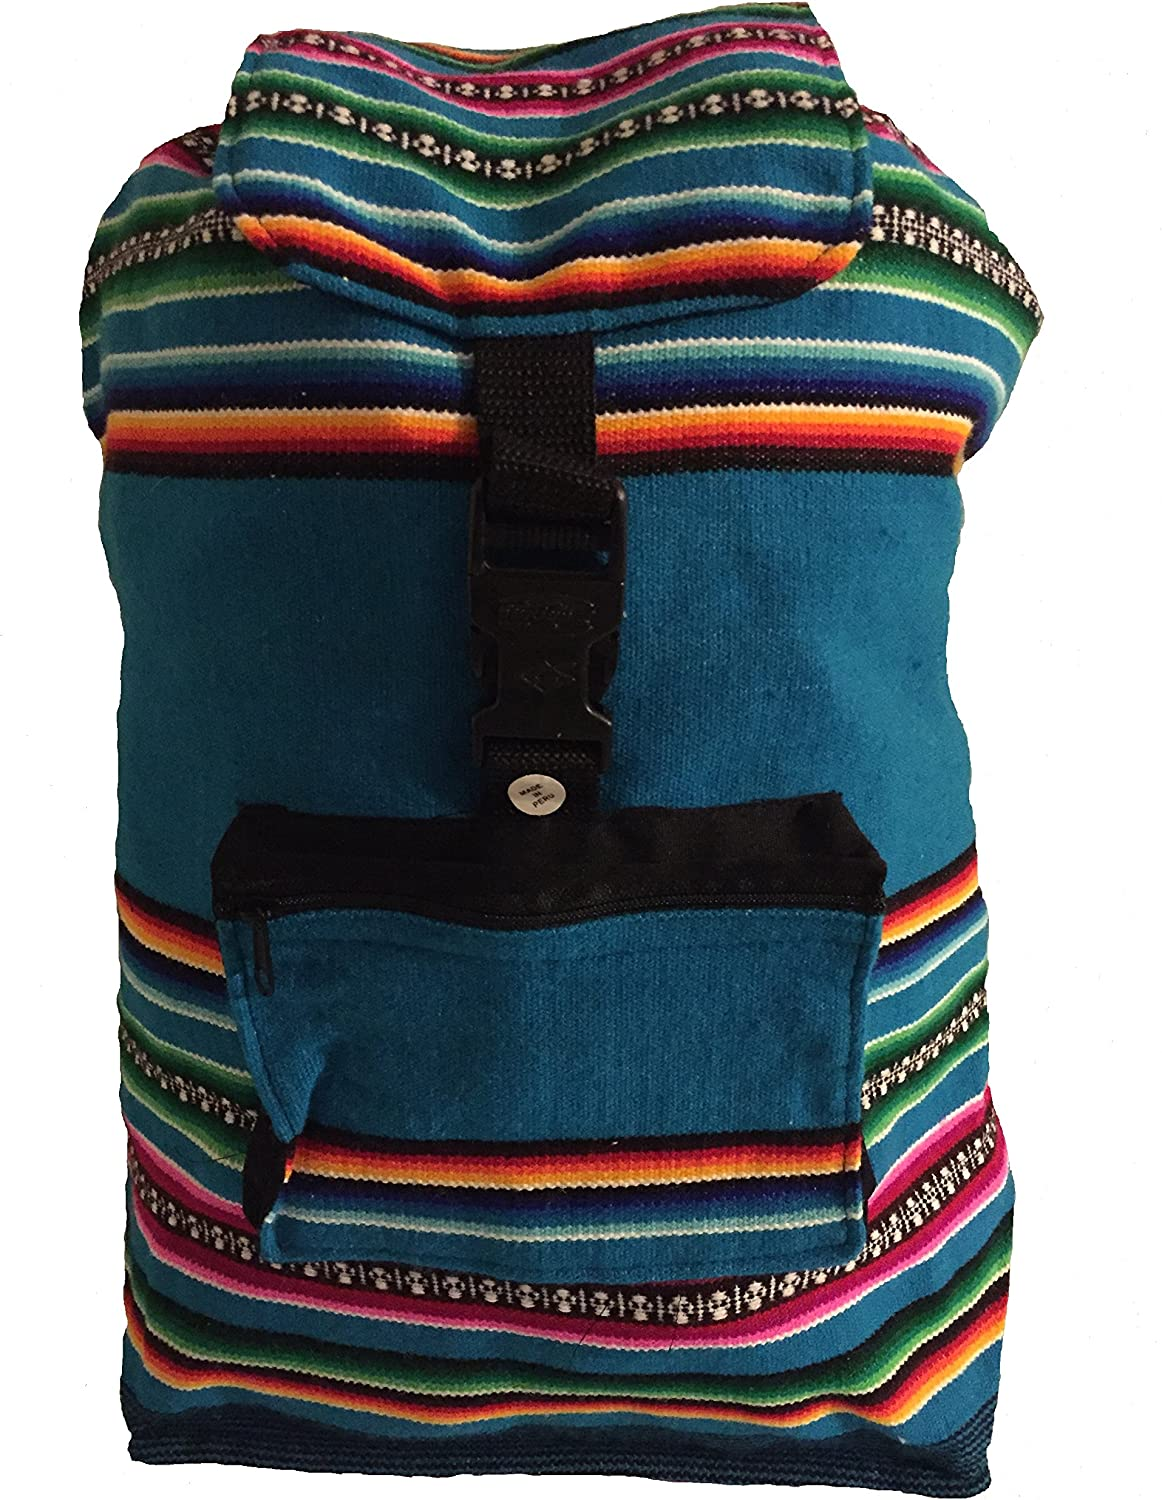 Beach Bag Hiking Backpack